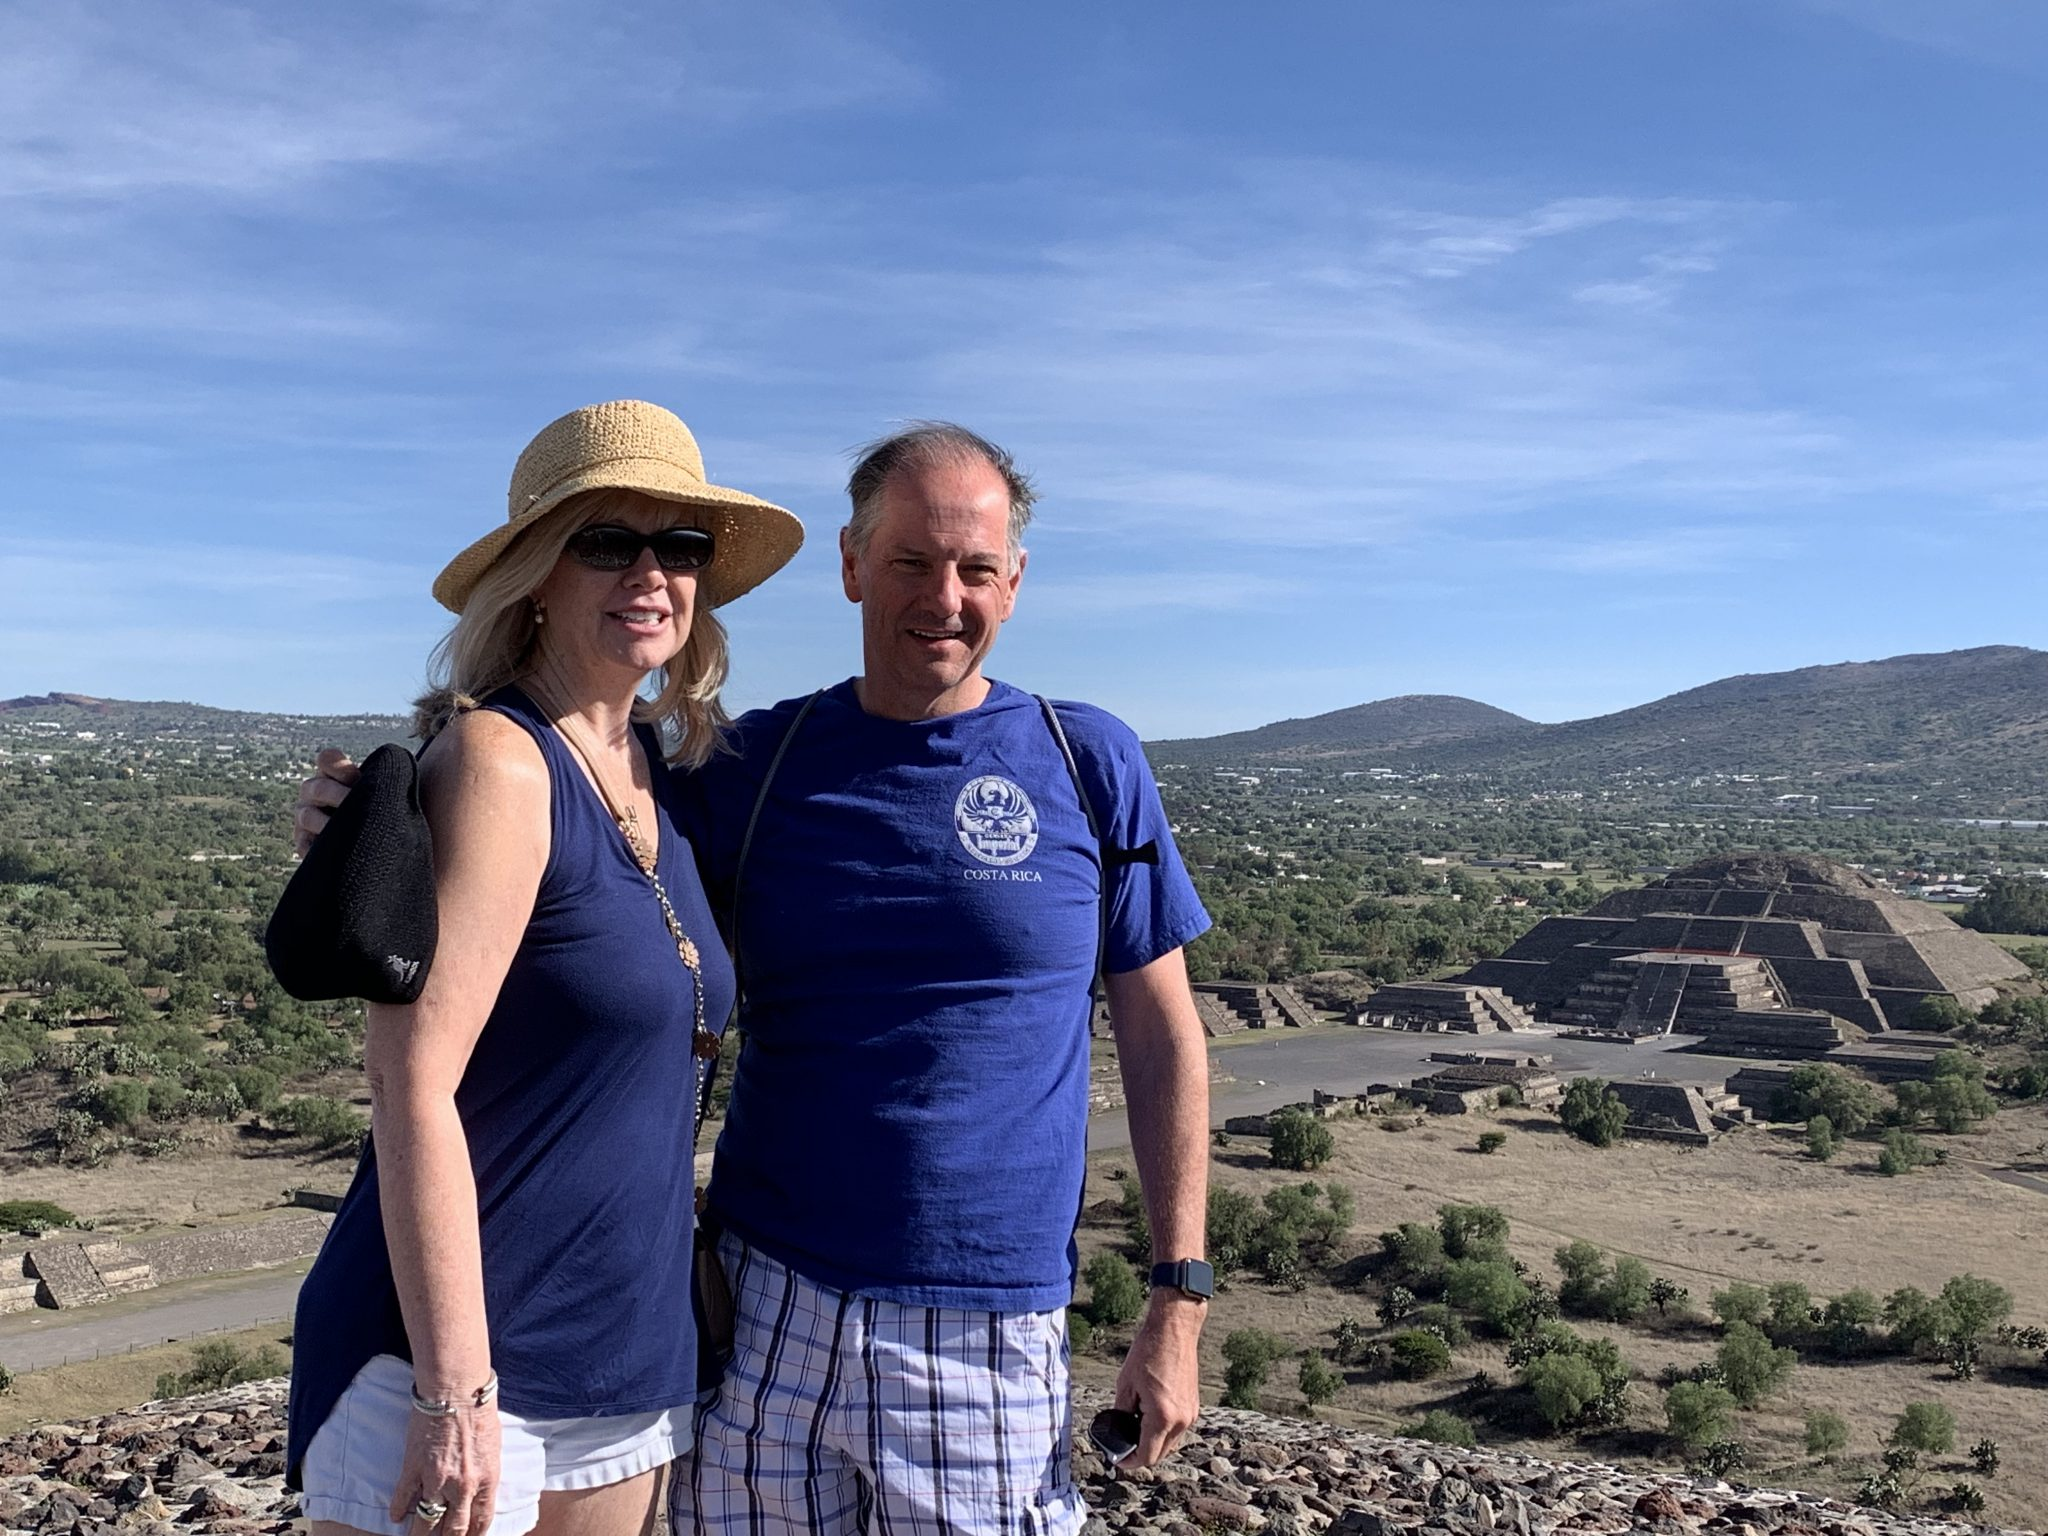 Atop the Pyramid of the Sun Teotihuacan